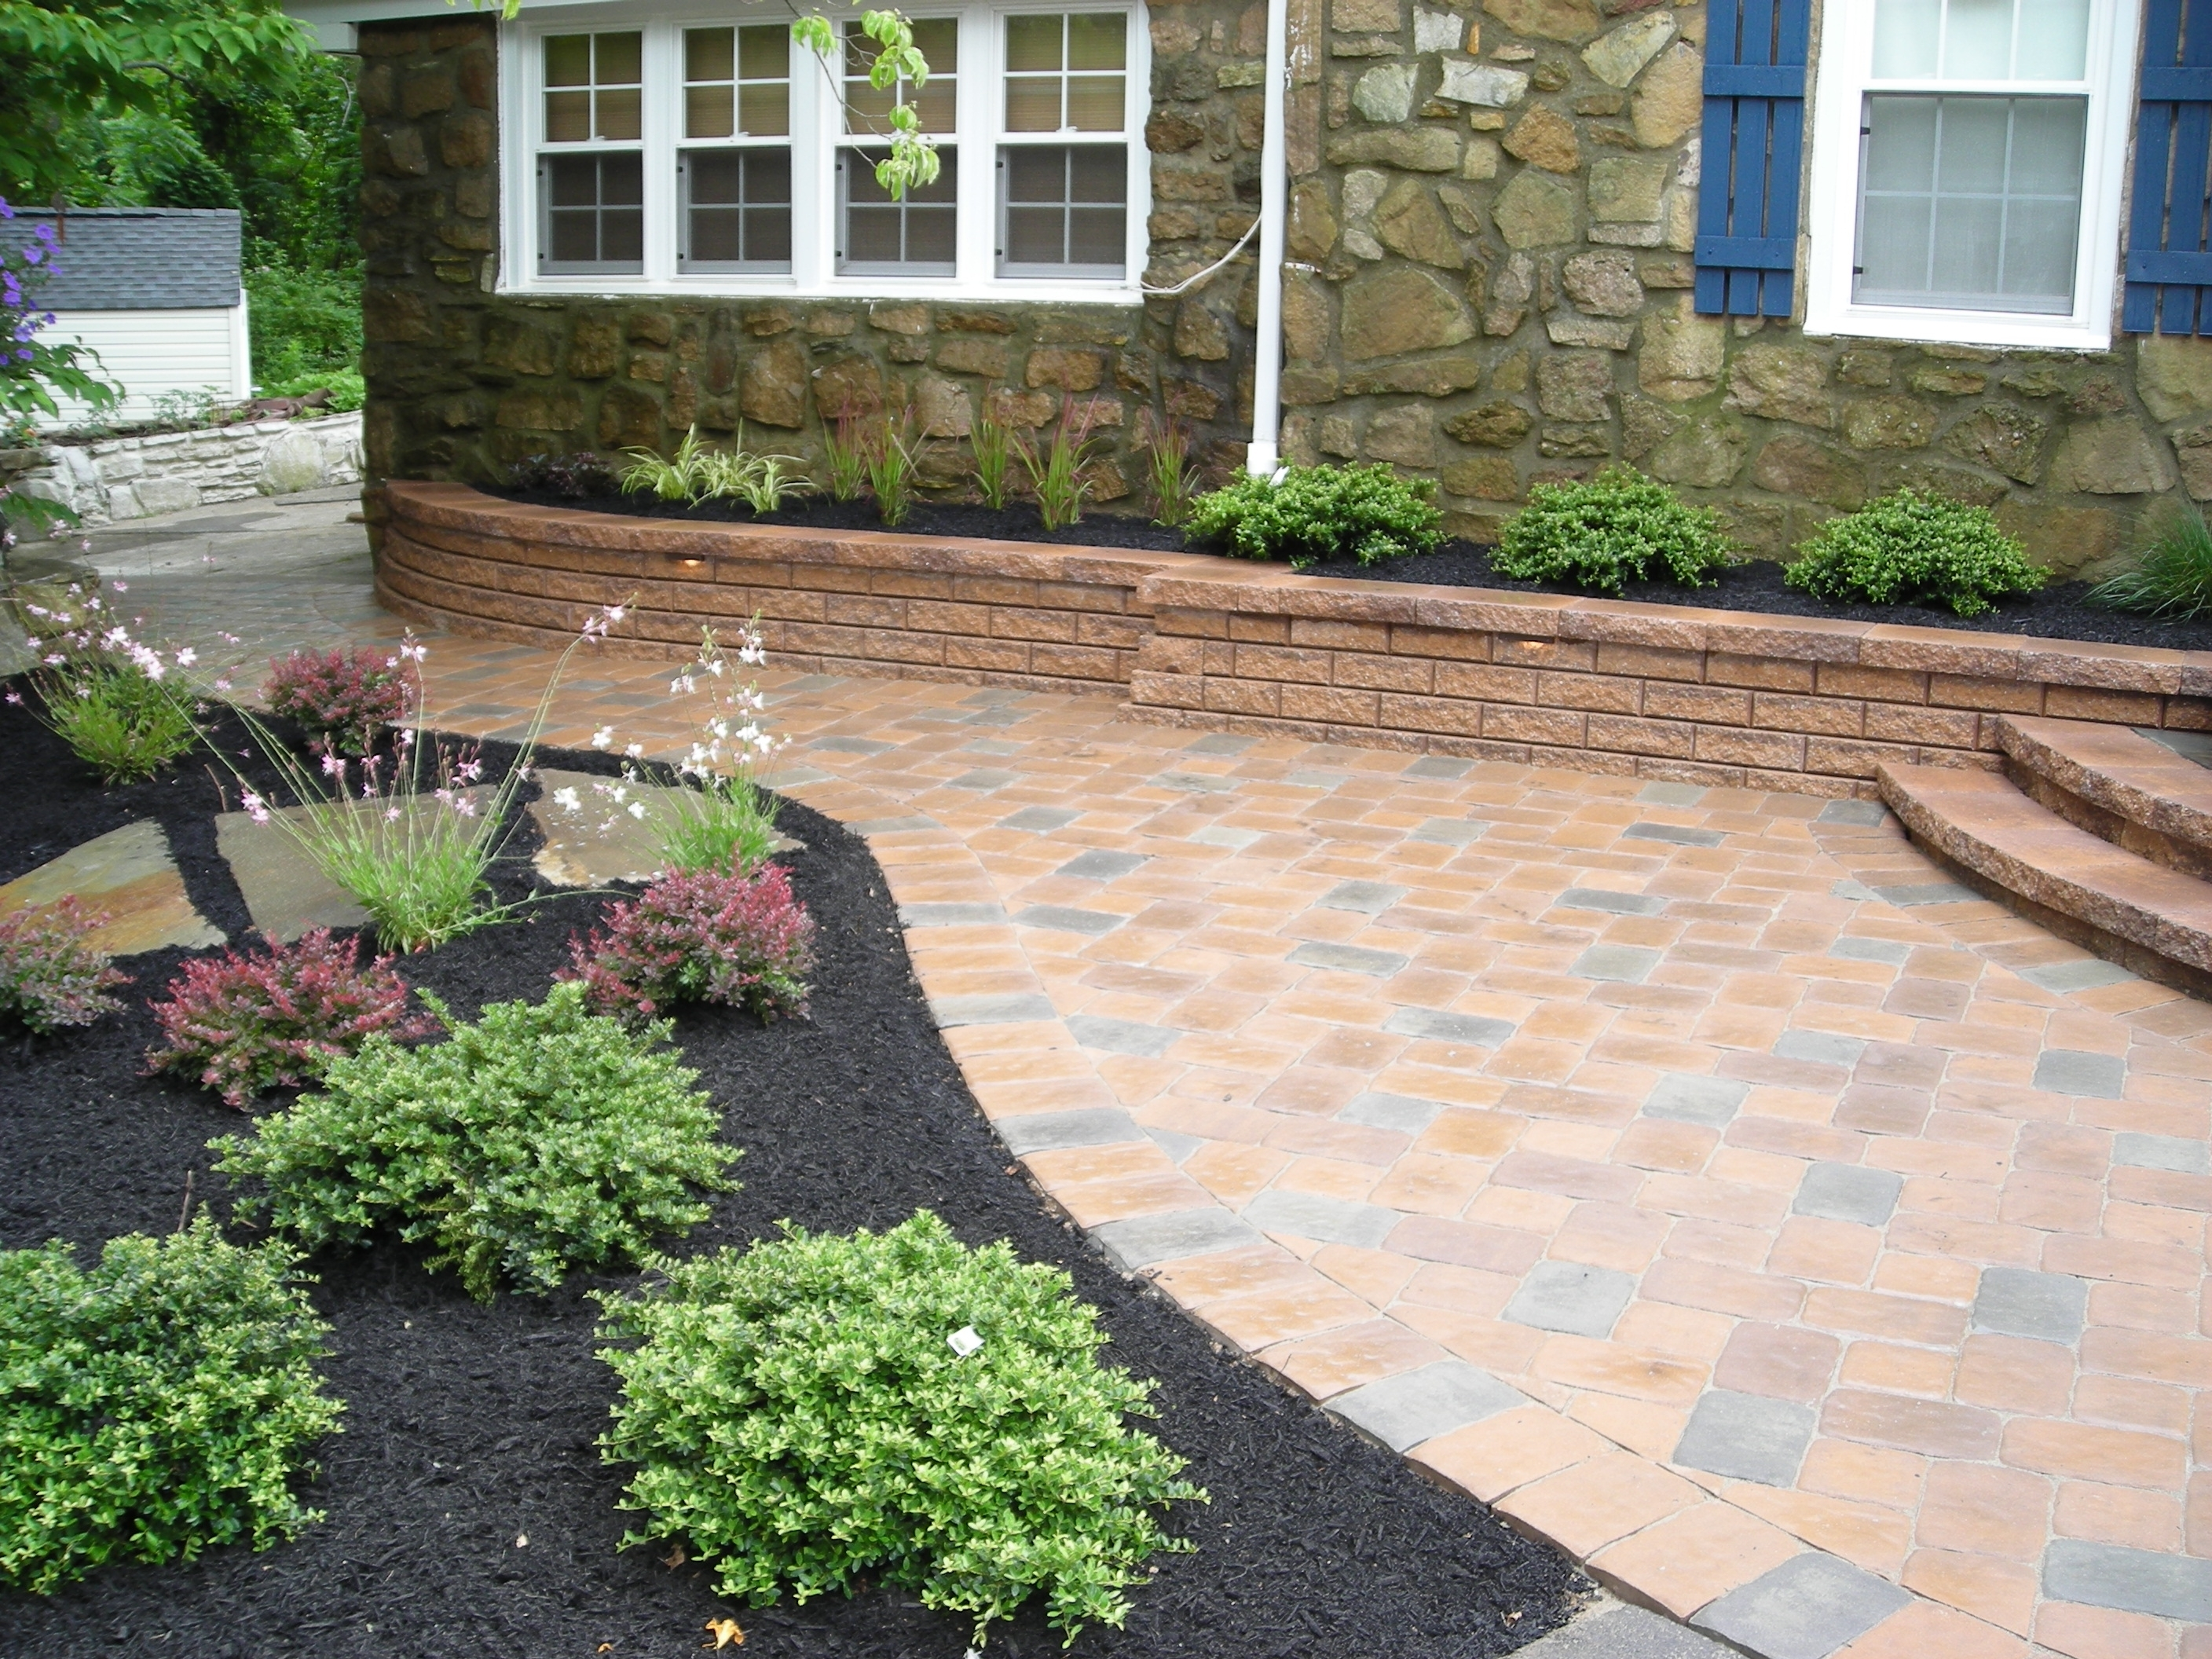 Paving ideas for small back gardens garden design for Paving designs for small garden path